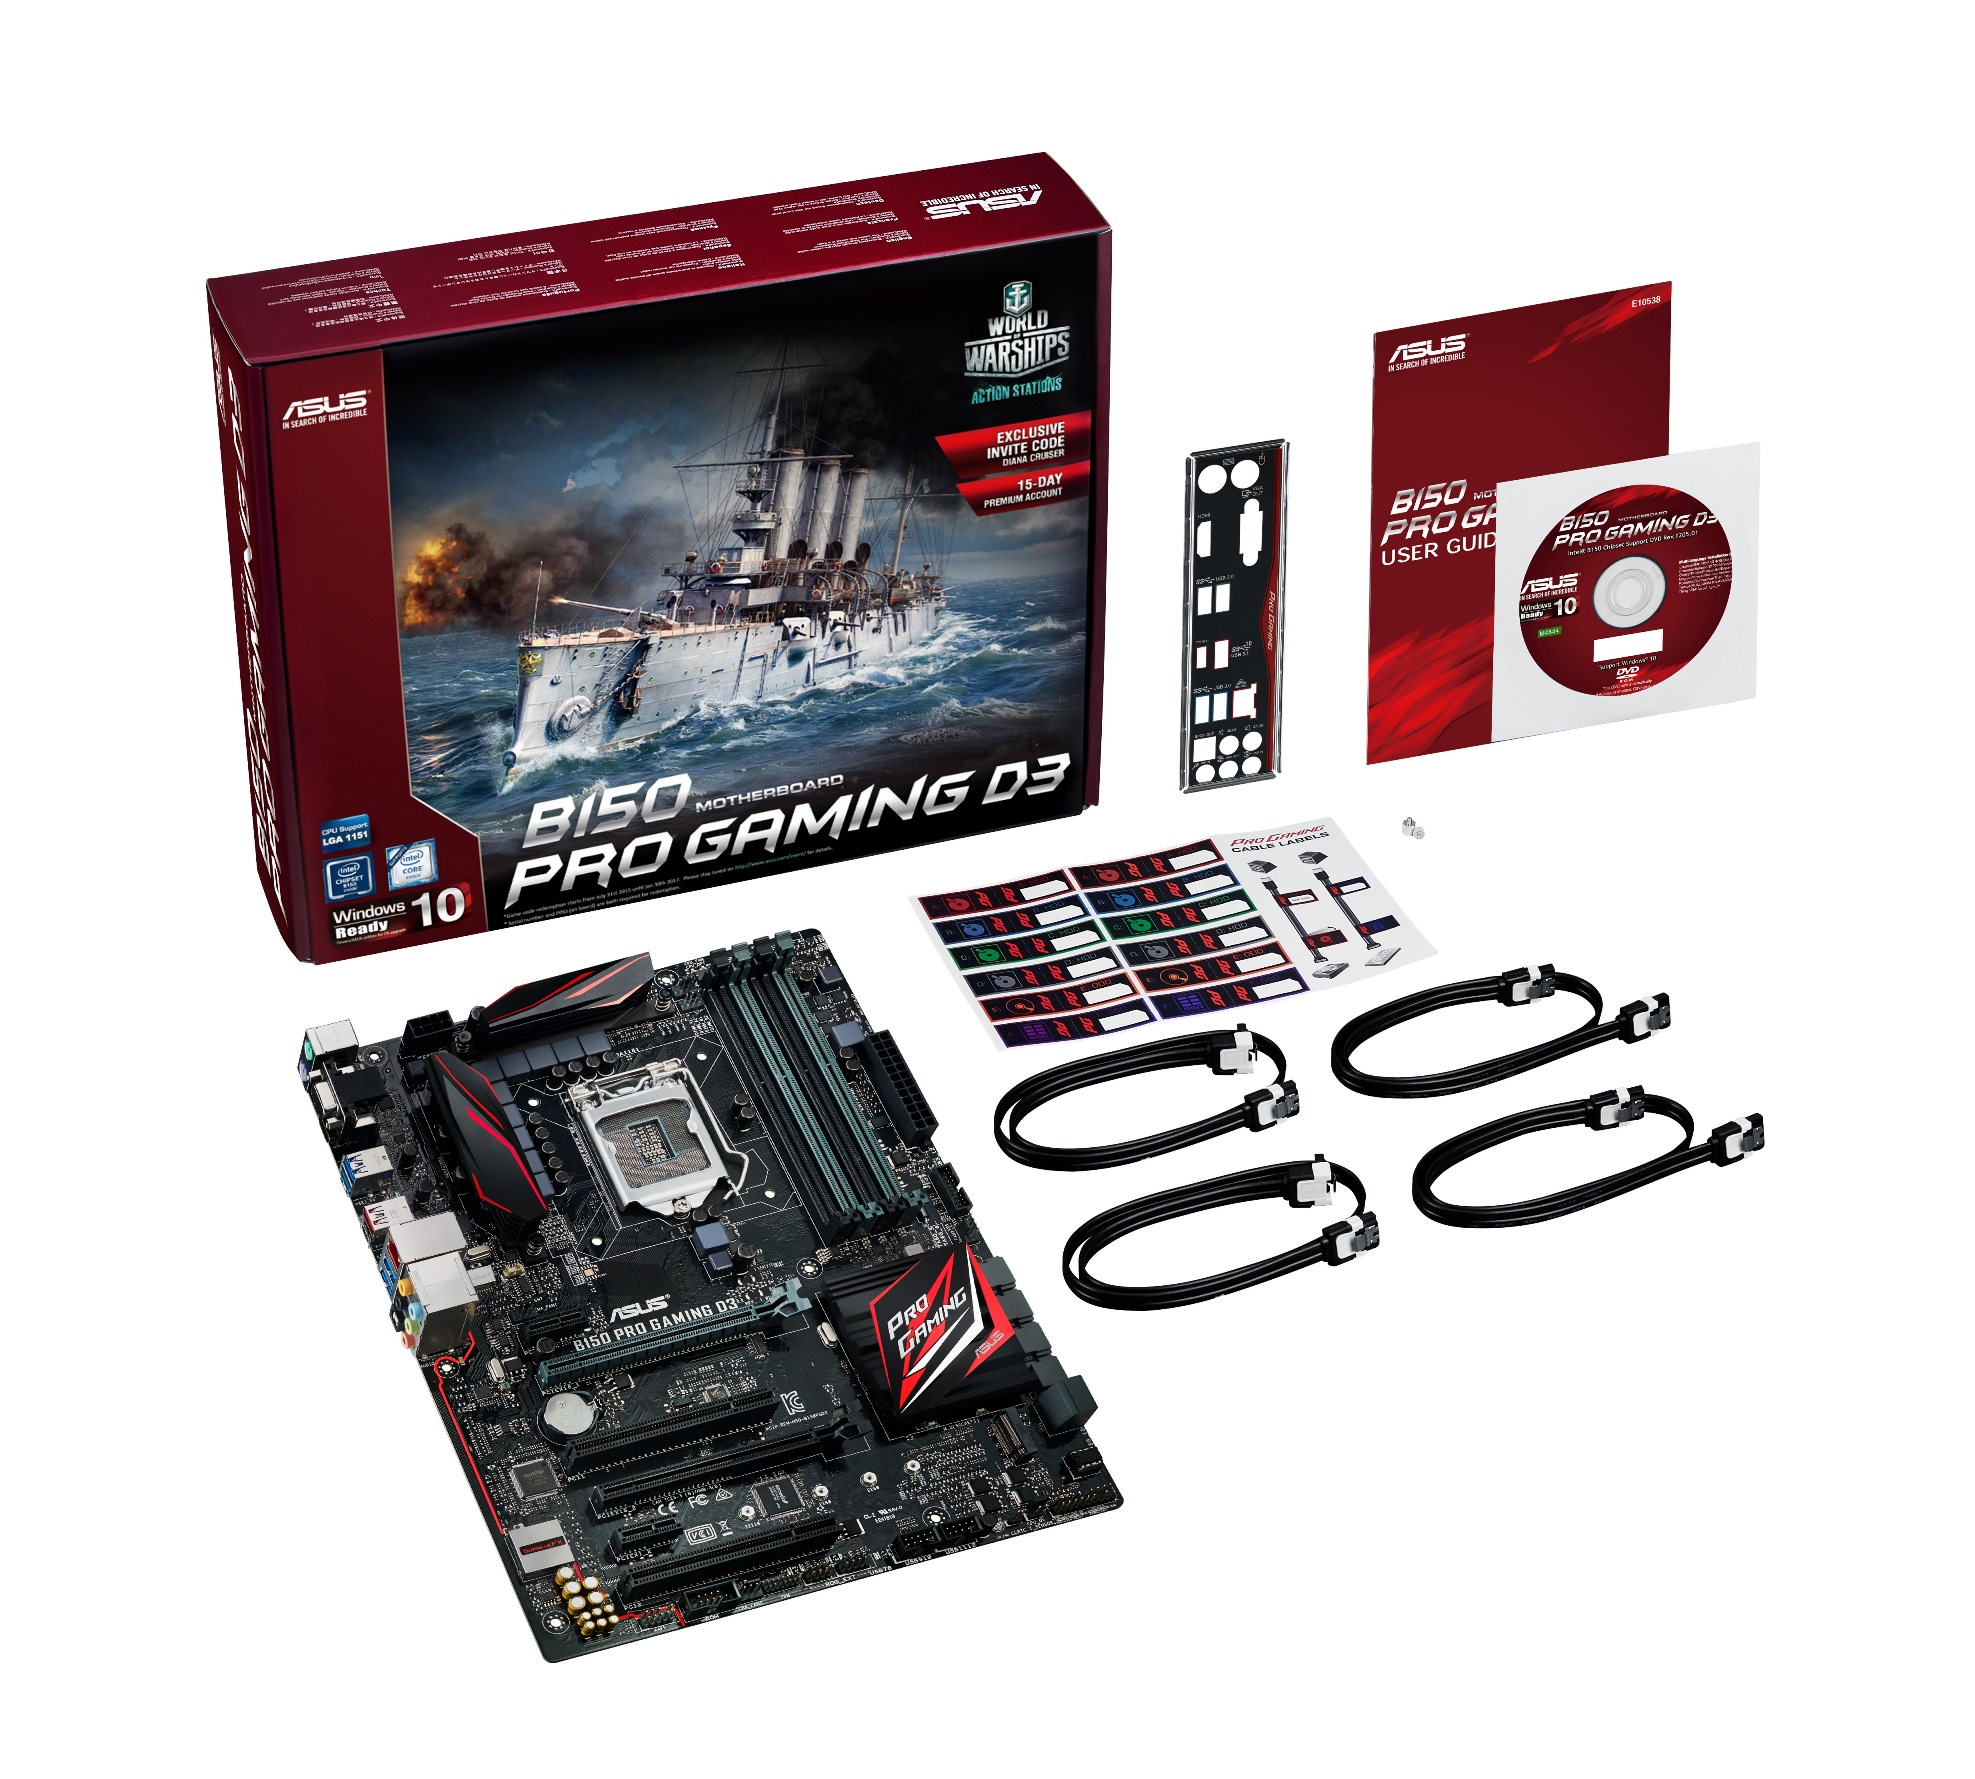 B150-Pro-Gaming-D3 full-package